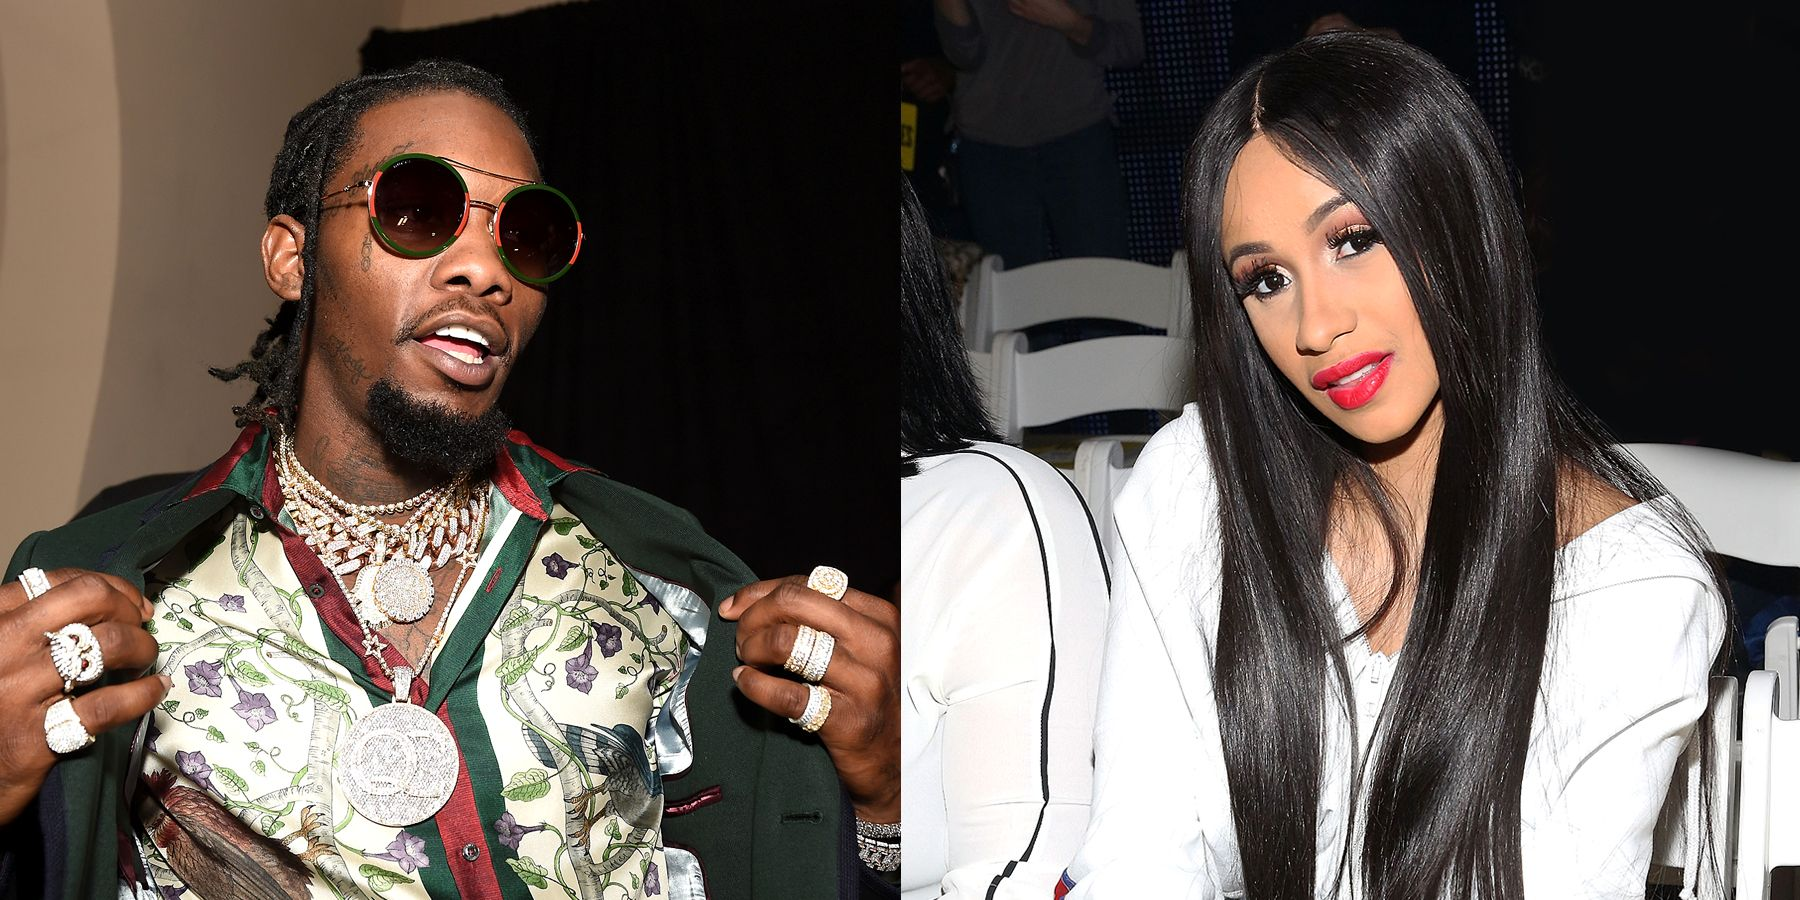 Cardi B Is Reportedly Heartbroken After Her And Offset's Trip To Australia Got Canceled Following Their Breakup